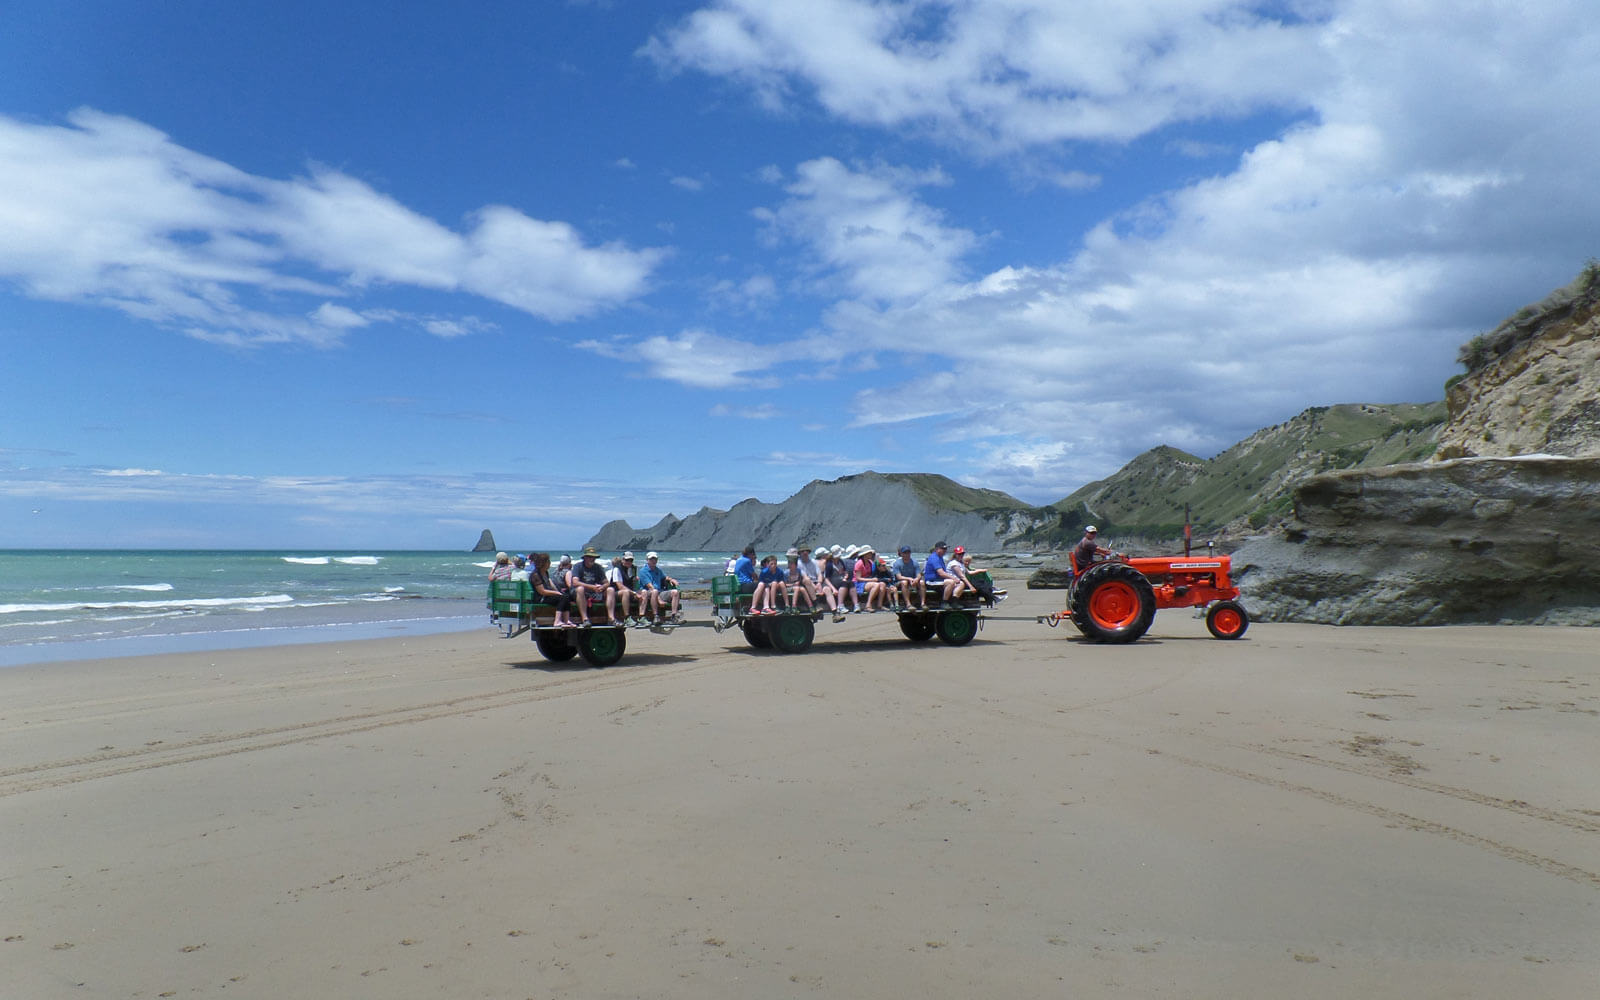 Traktor-Tour zum Cape Kidnappers in Neuseeland